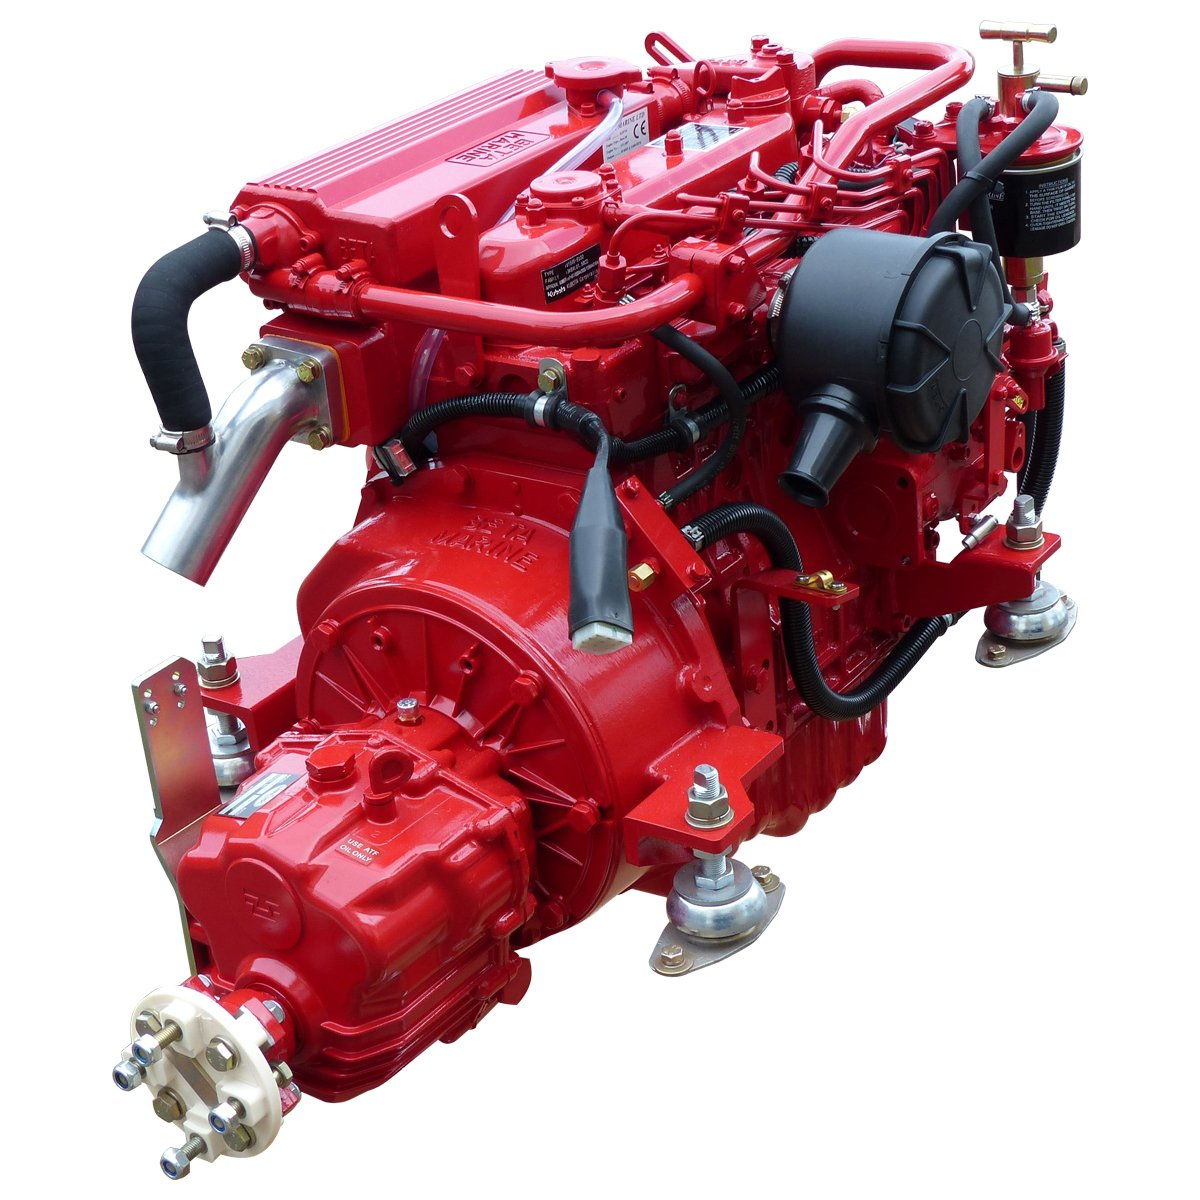 Beta Marine USA - marine diesel propulsion engines - Beta 35 heat exchanger engine